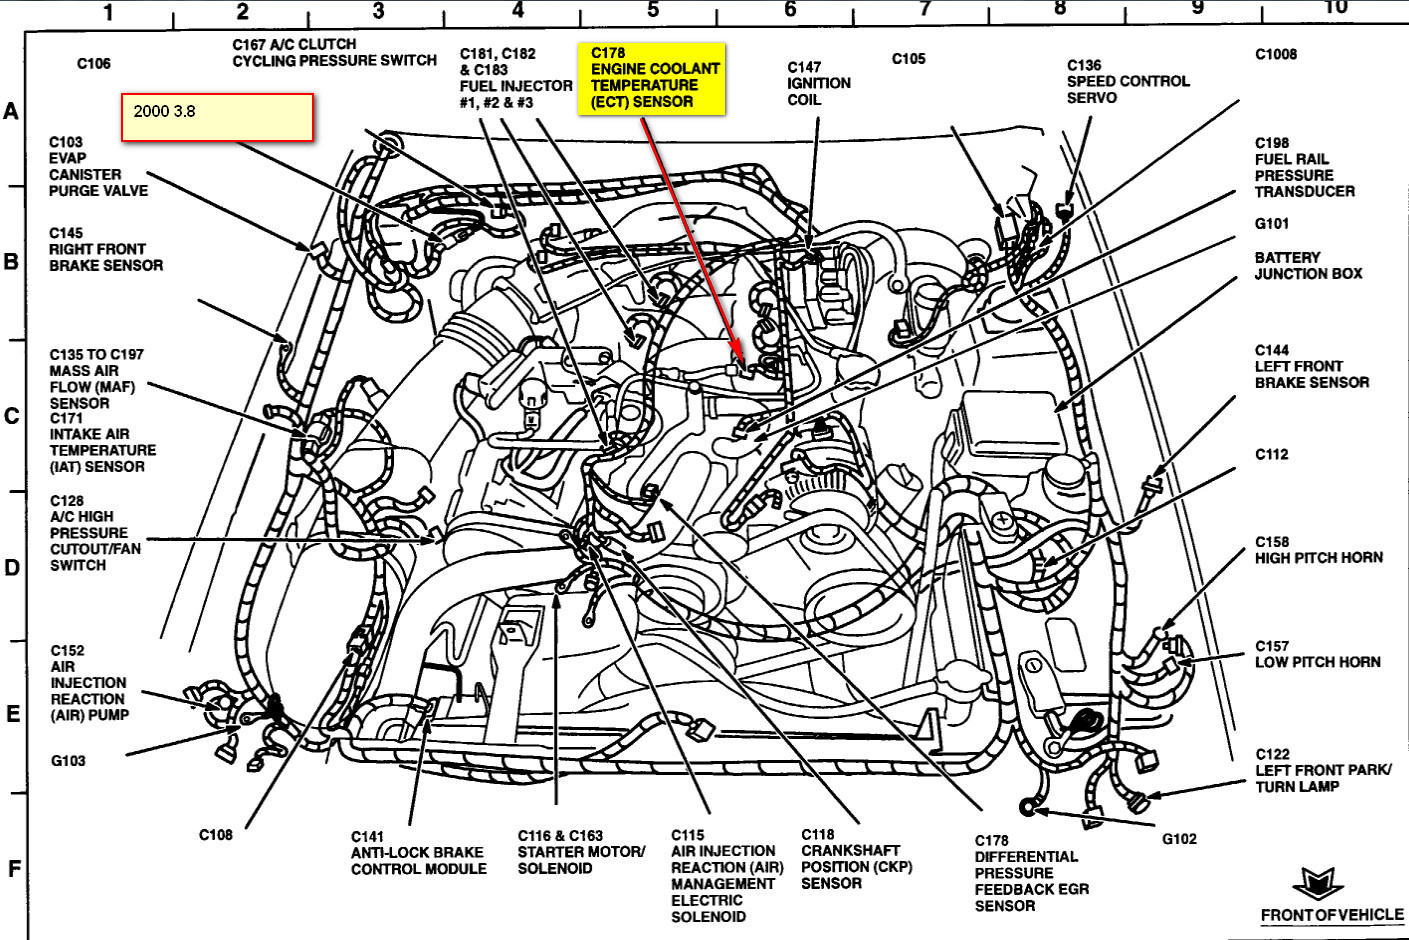 92 Honda Accord Map Sensor Location furthermore Kia Sorento Spark Plug Location as well At Sensor Solenoid together with Lexus Es300 Fuse Diagram further Ignition Switch Wiring Diagram 97 Dakota. on wiring harness honda accord 2002